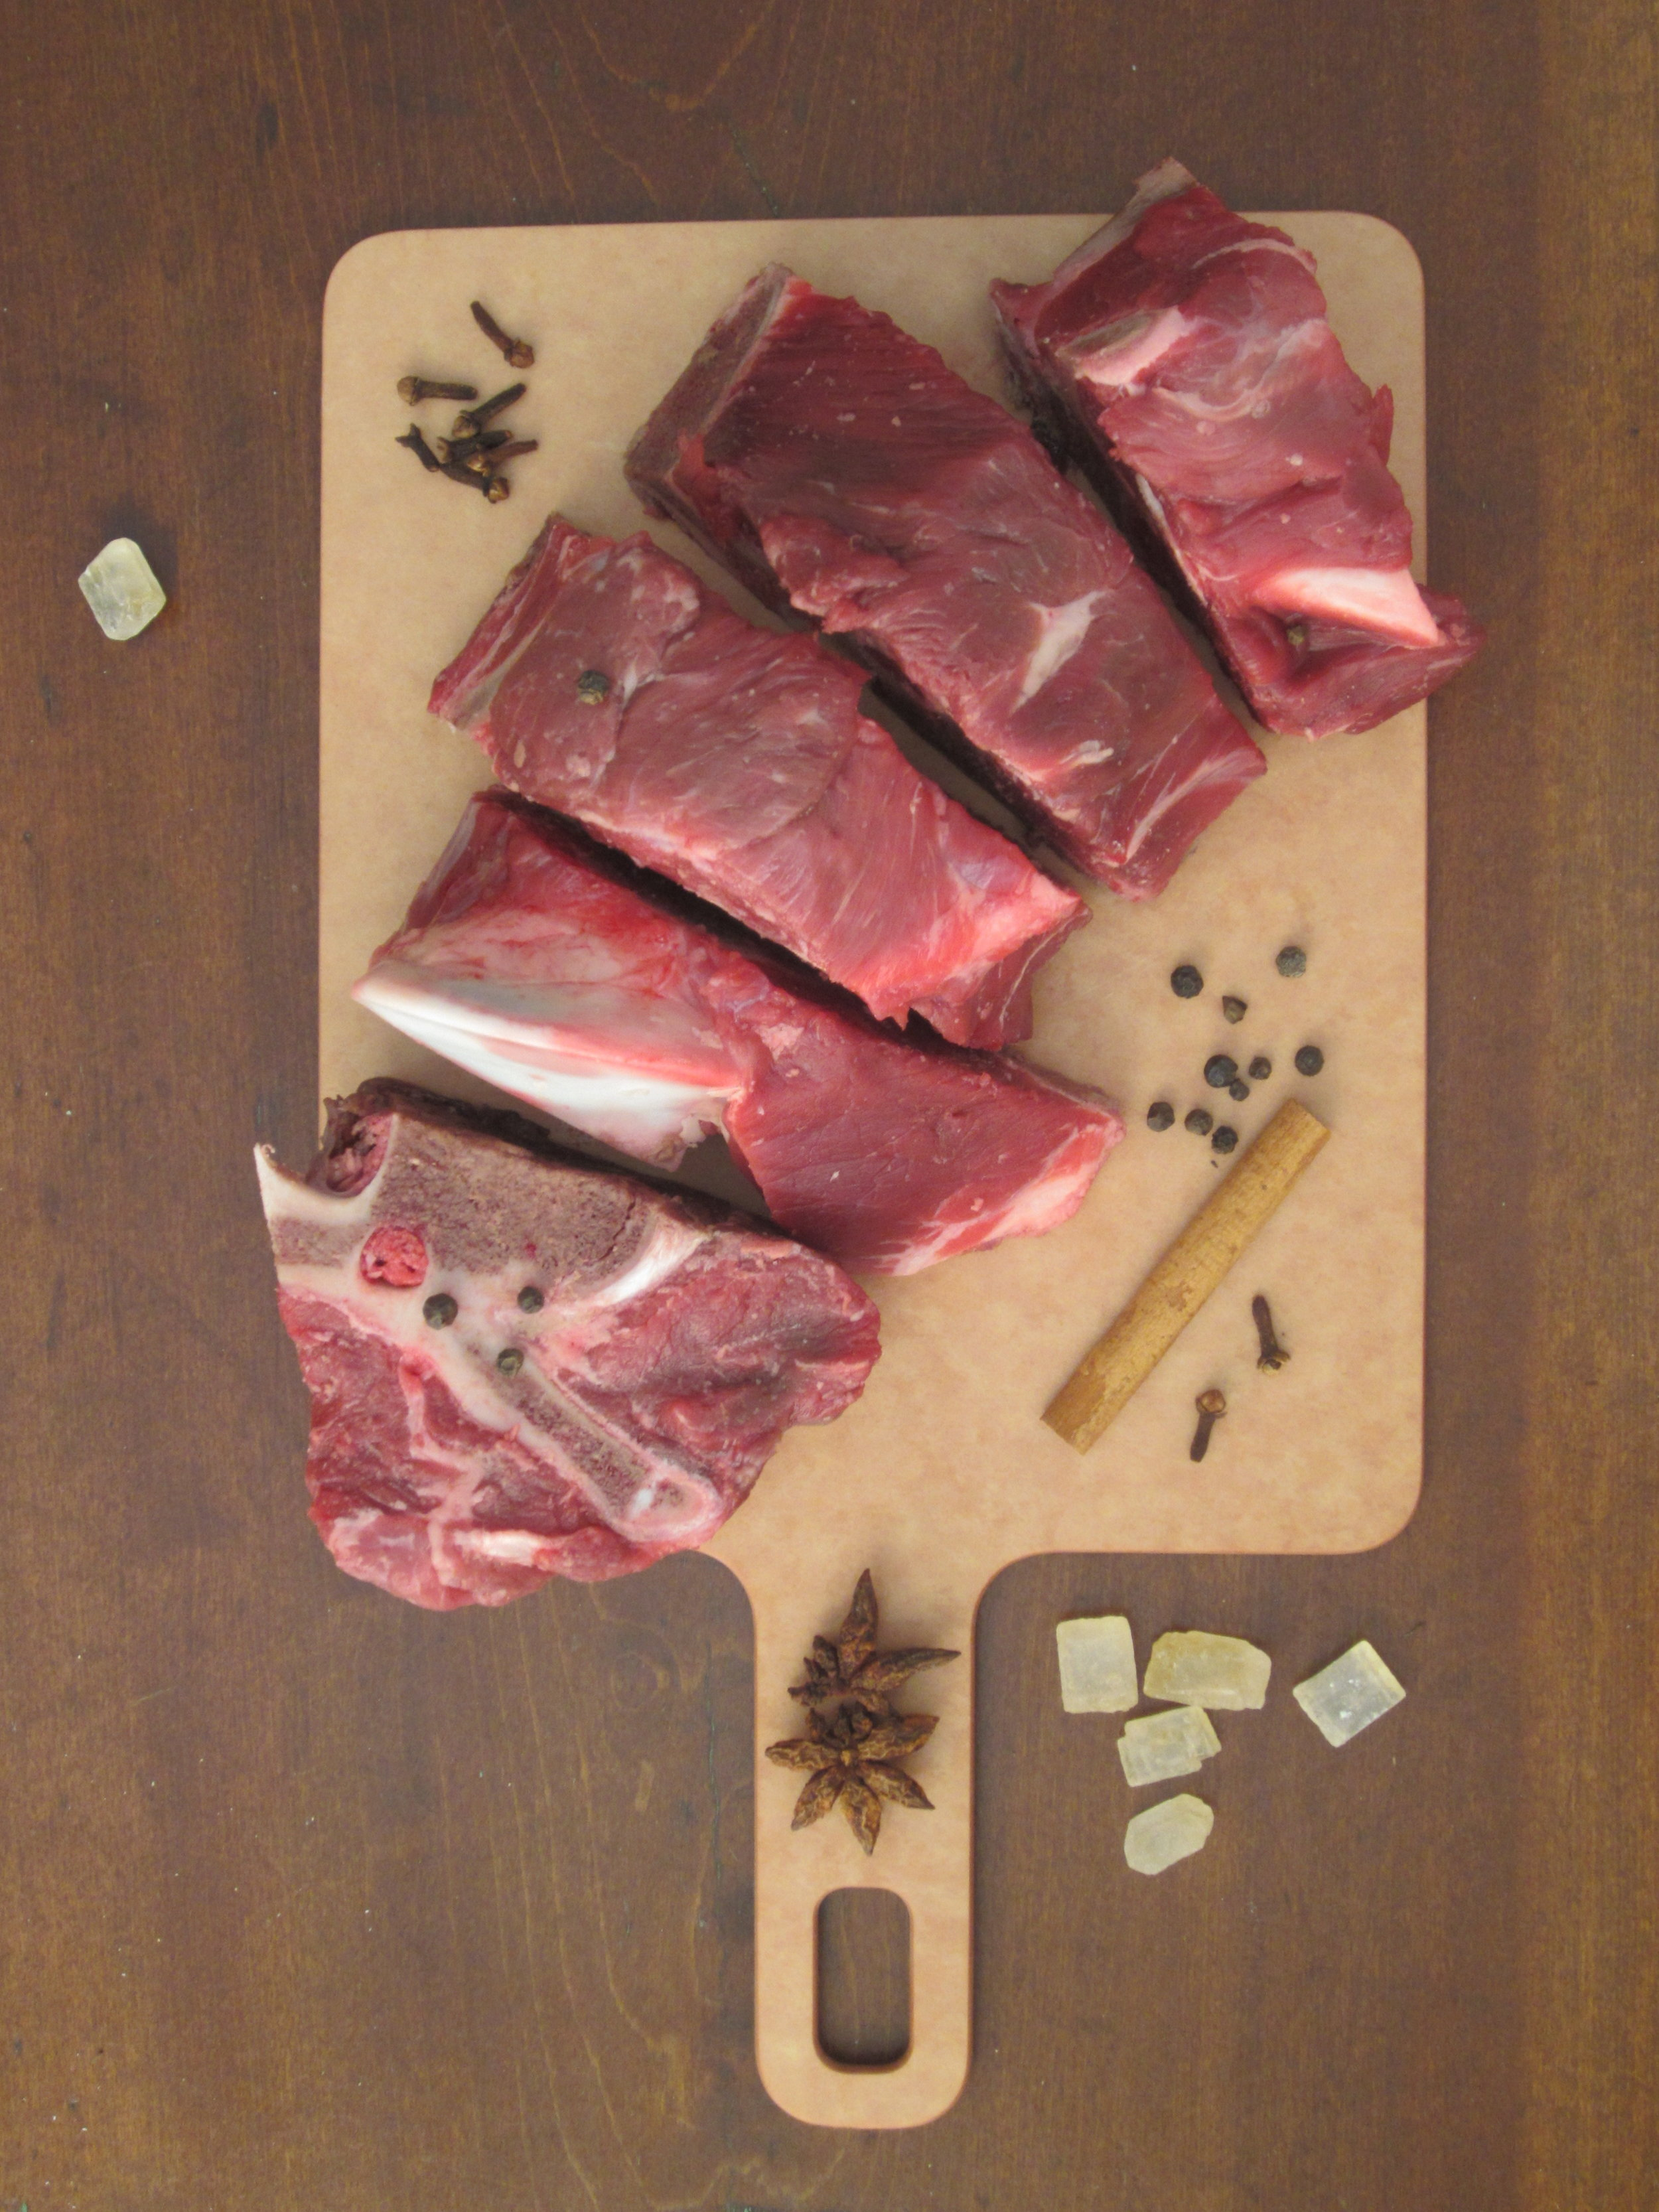 Beef is a good source of protein on a low- FODMAP diet. These ingredients will make a tasty Asian-style broth for a beef soup: meaty bones, cloves, peppercorns, stick cinnamon, whole anise and yellow rock sugar.